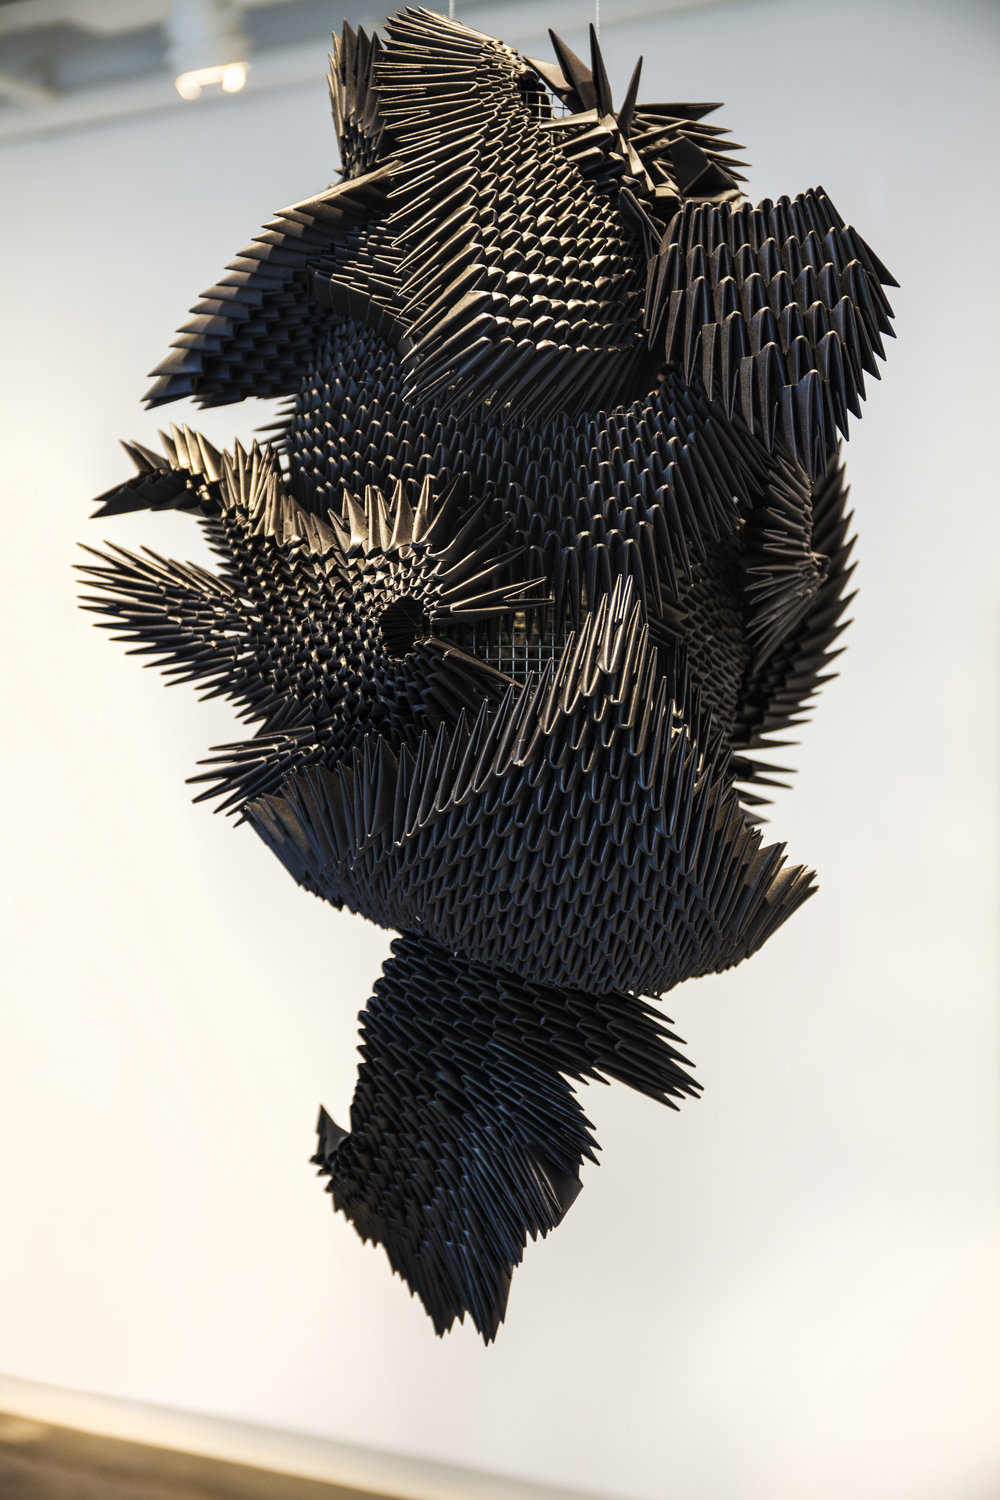 Inspired By The Flight Patterns Of Starling Birds, I Decided To Explore The  Concept Of Meditation Through Repetition Of Action. The Sculpture Has 7,000  ...